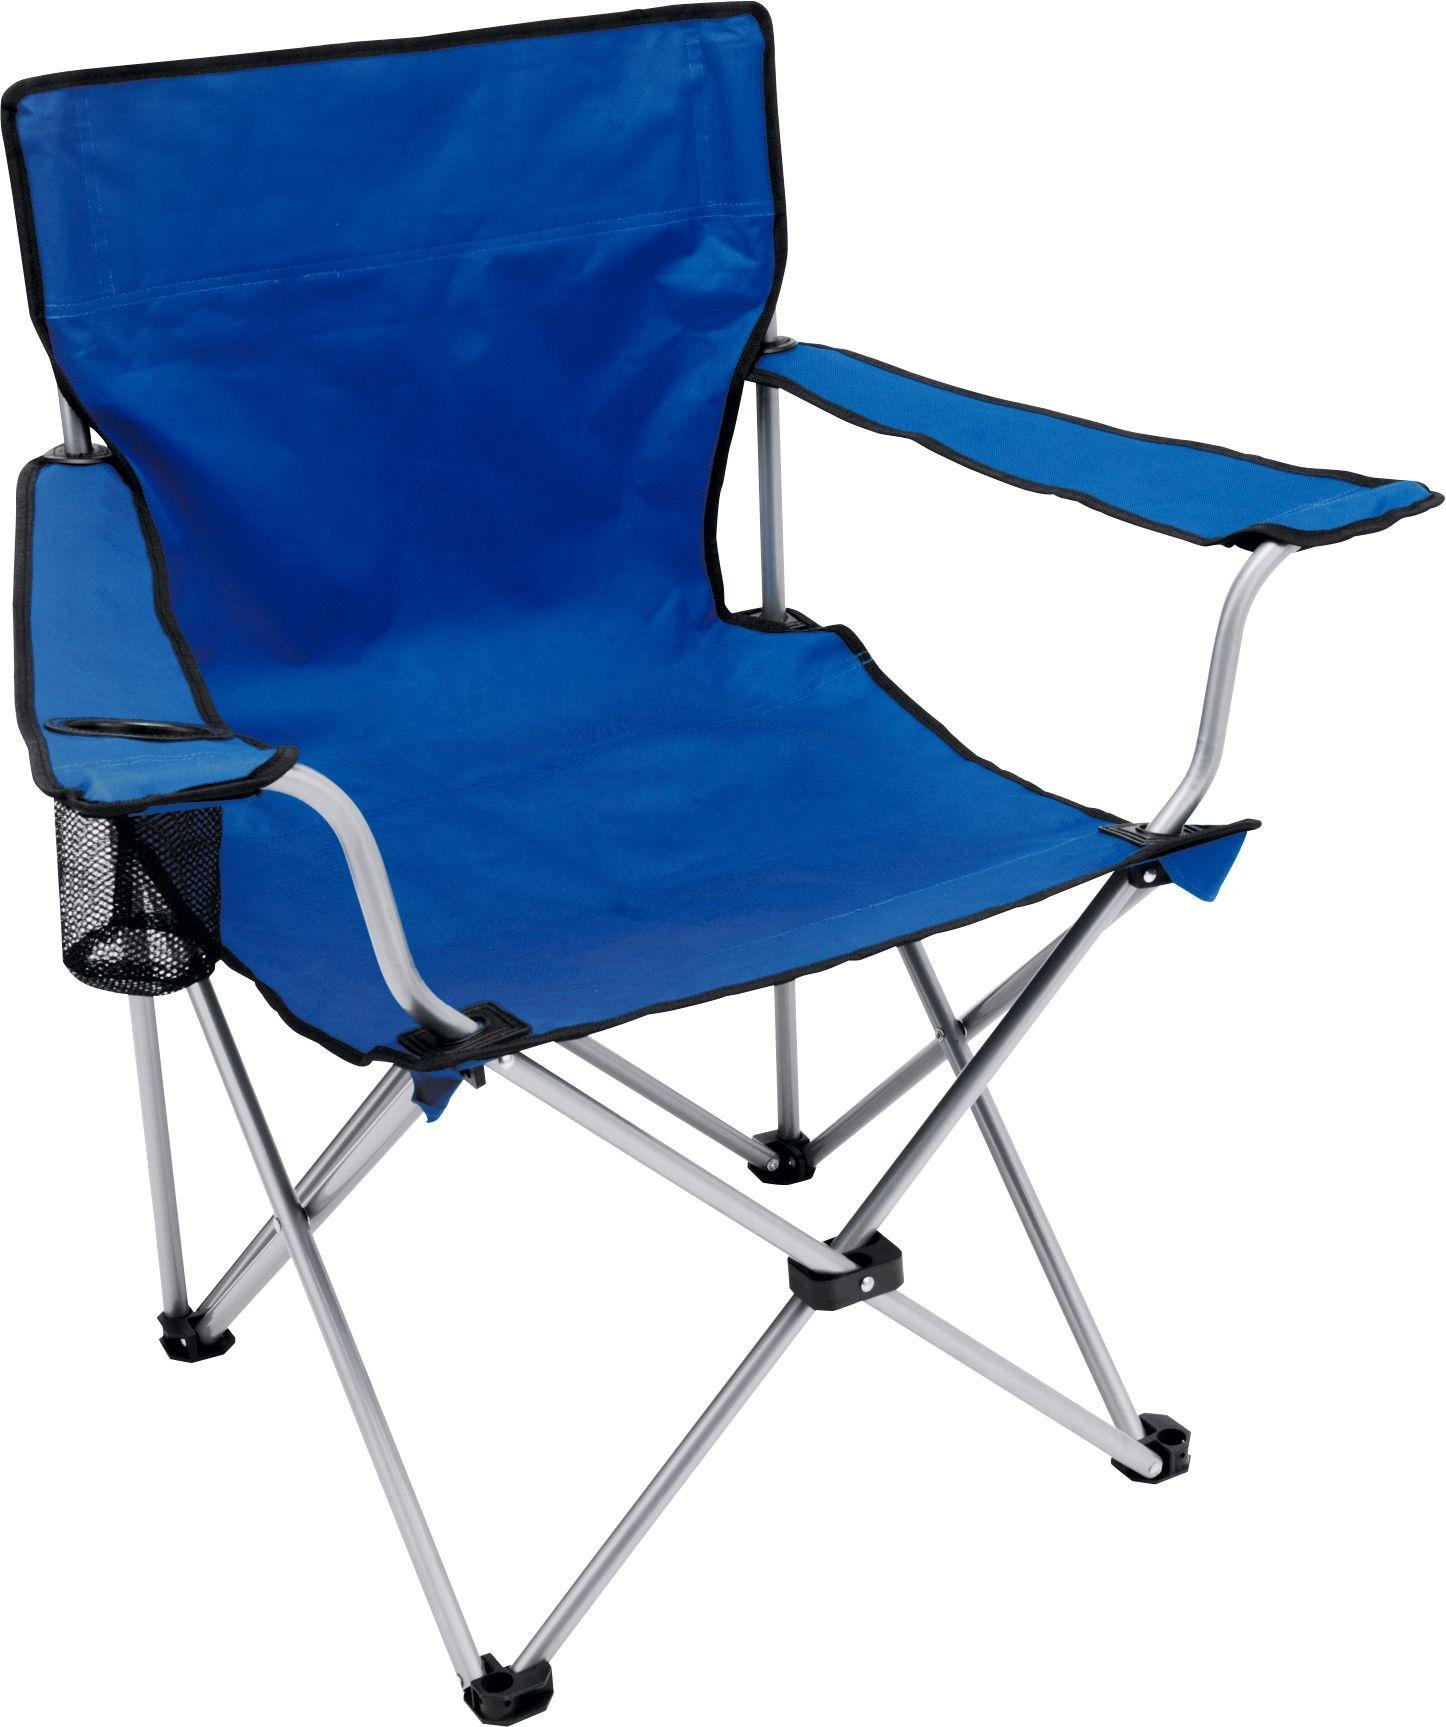 folding camping chairs steel folding camping chair CVLTYEW